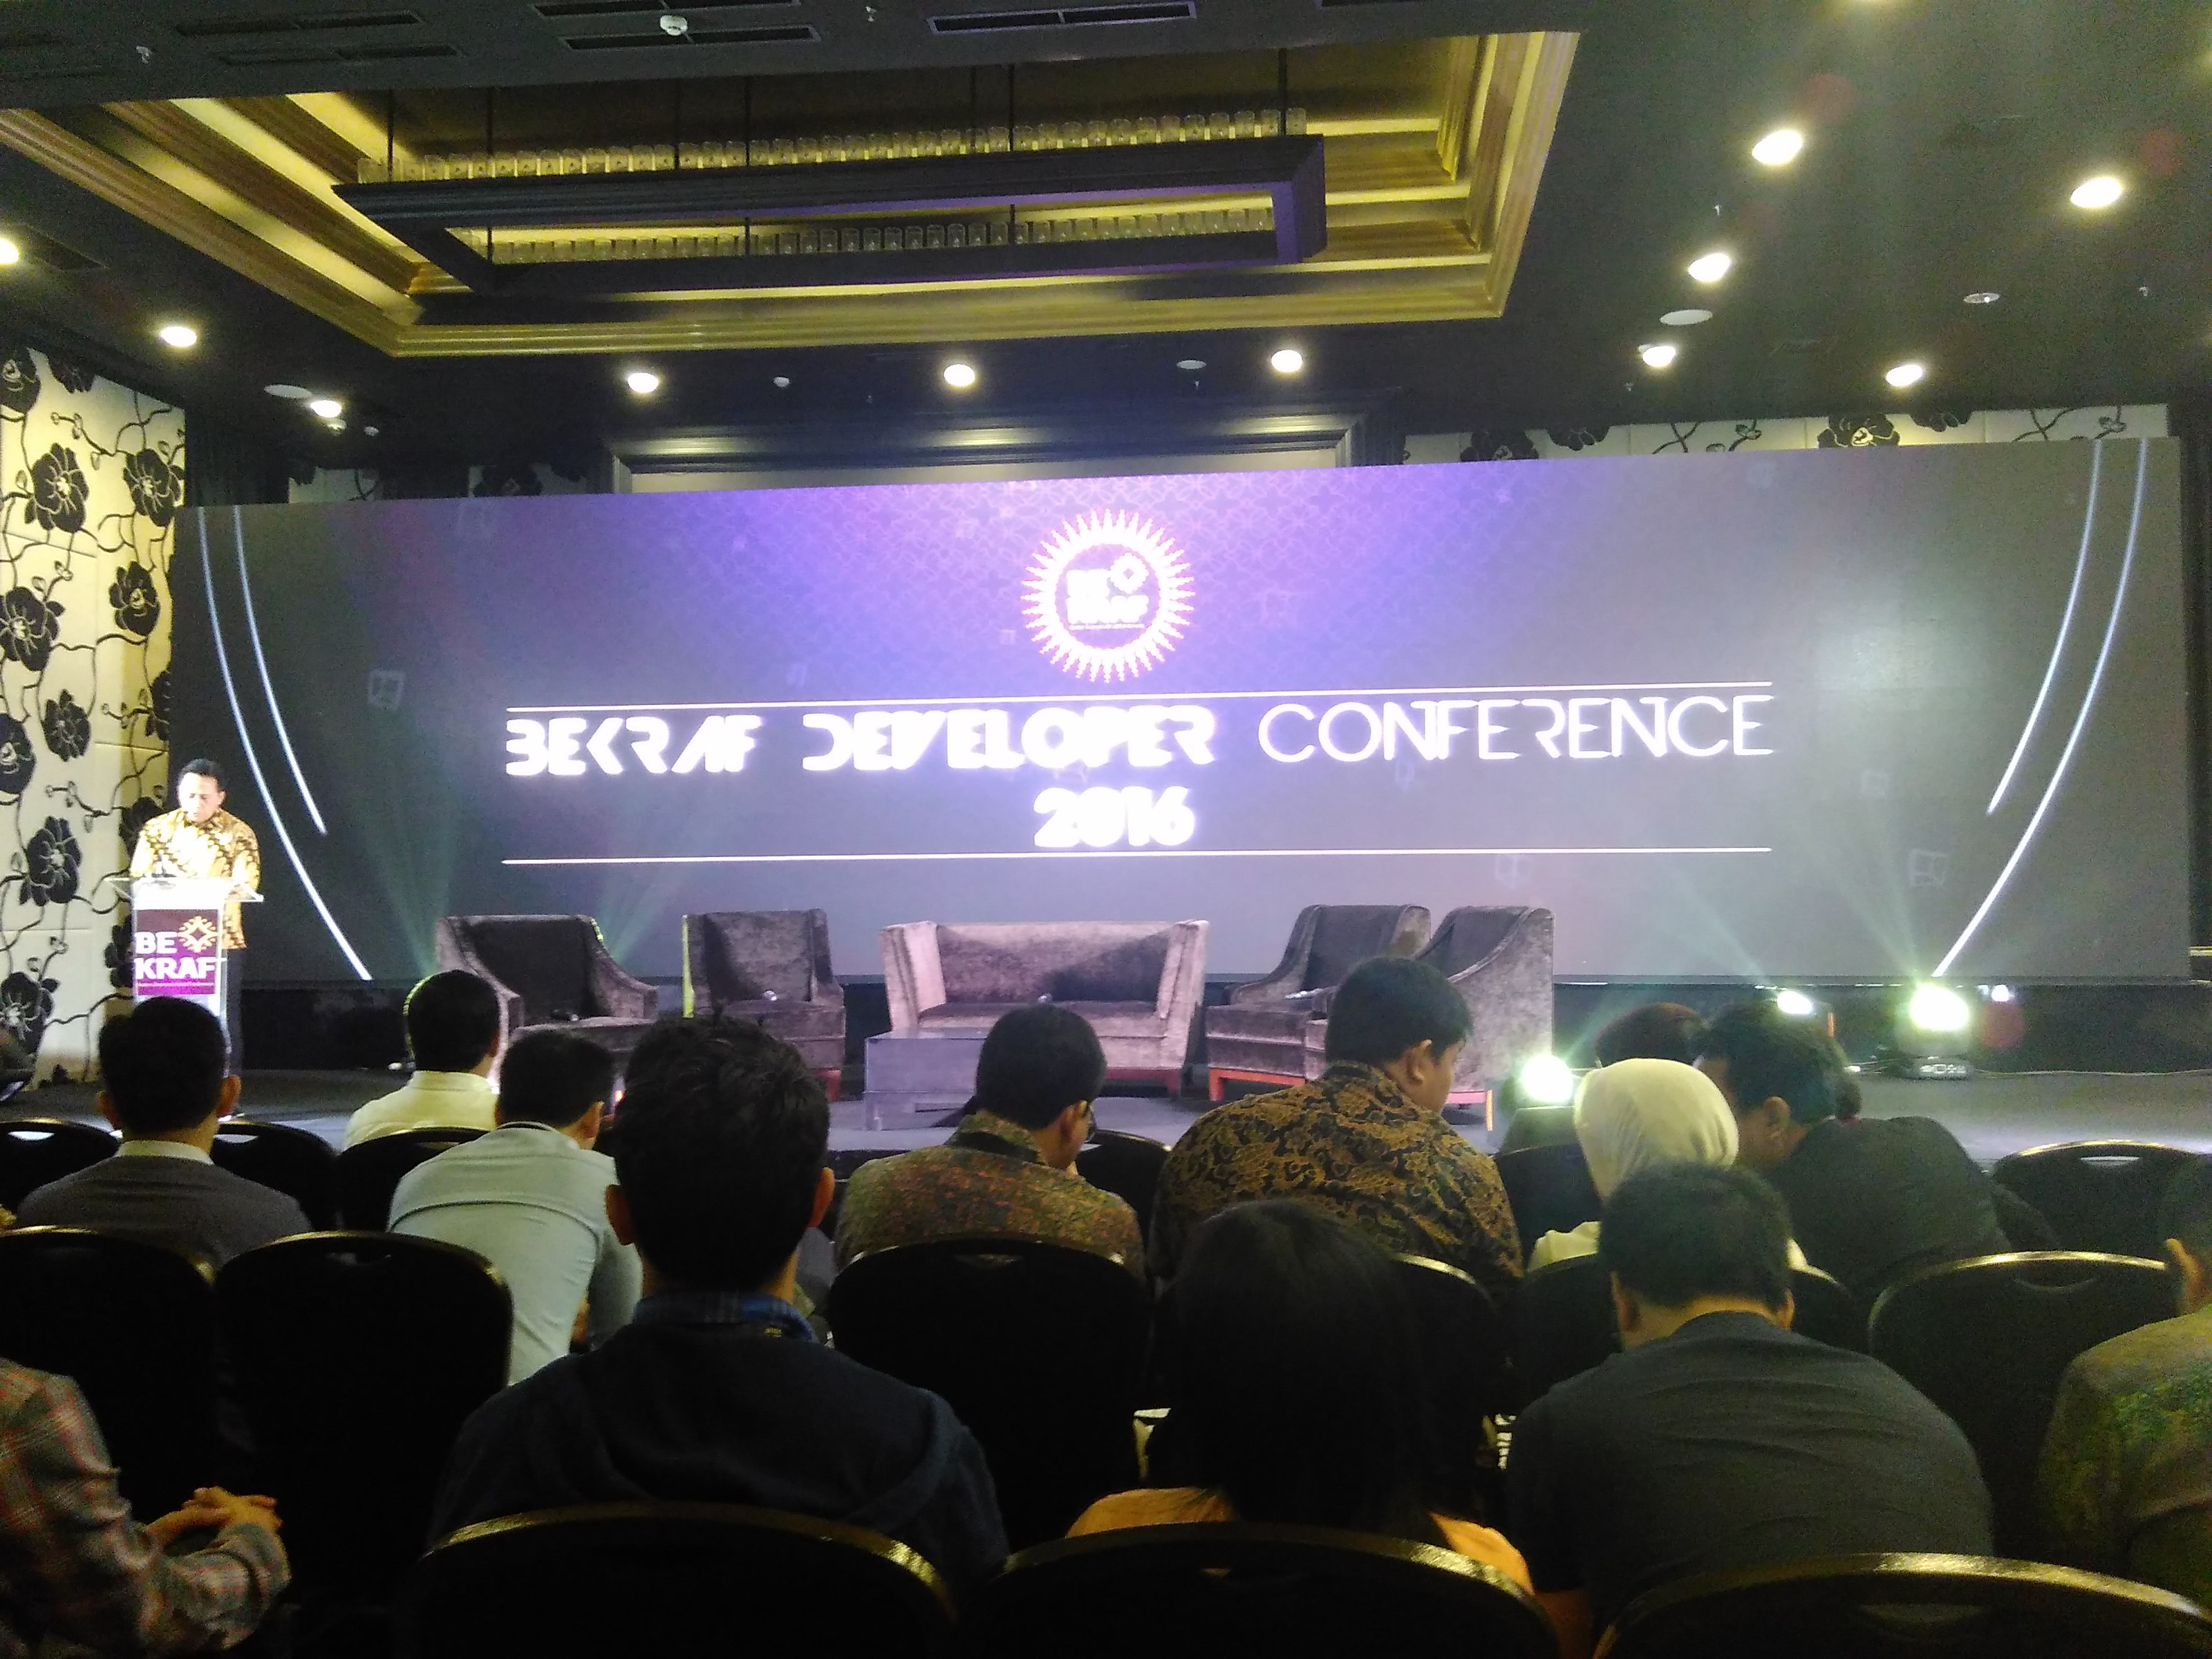 Bekraf Developer Conference